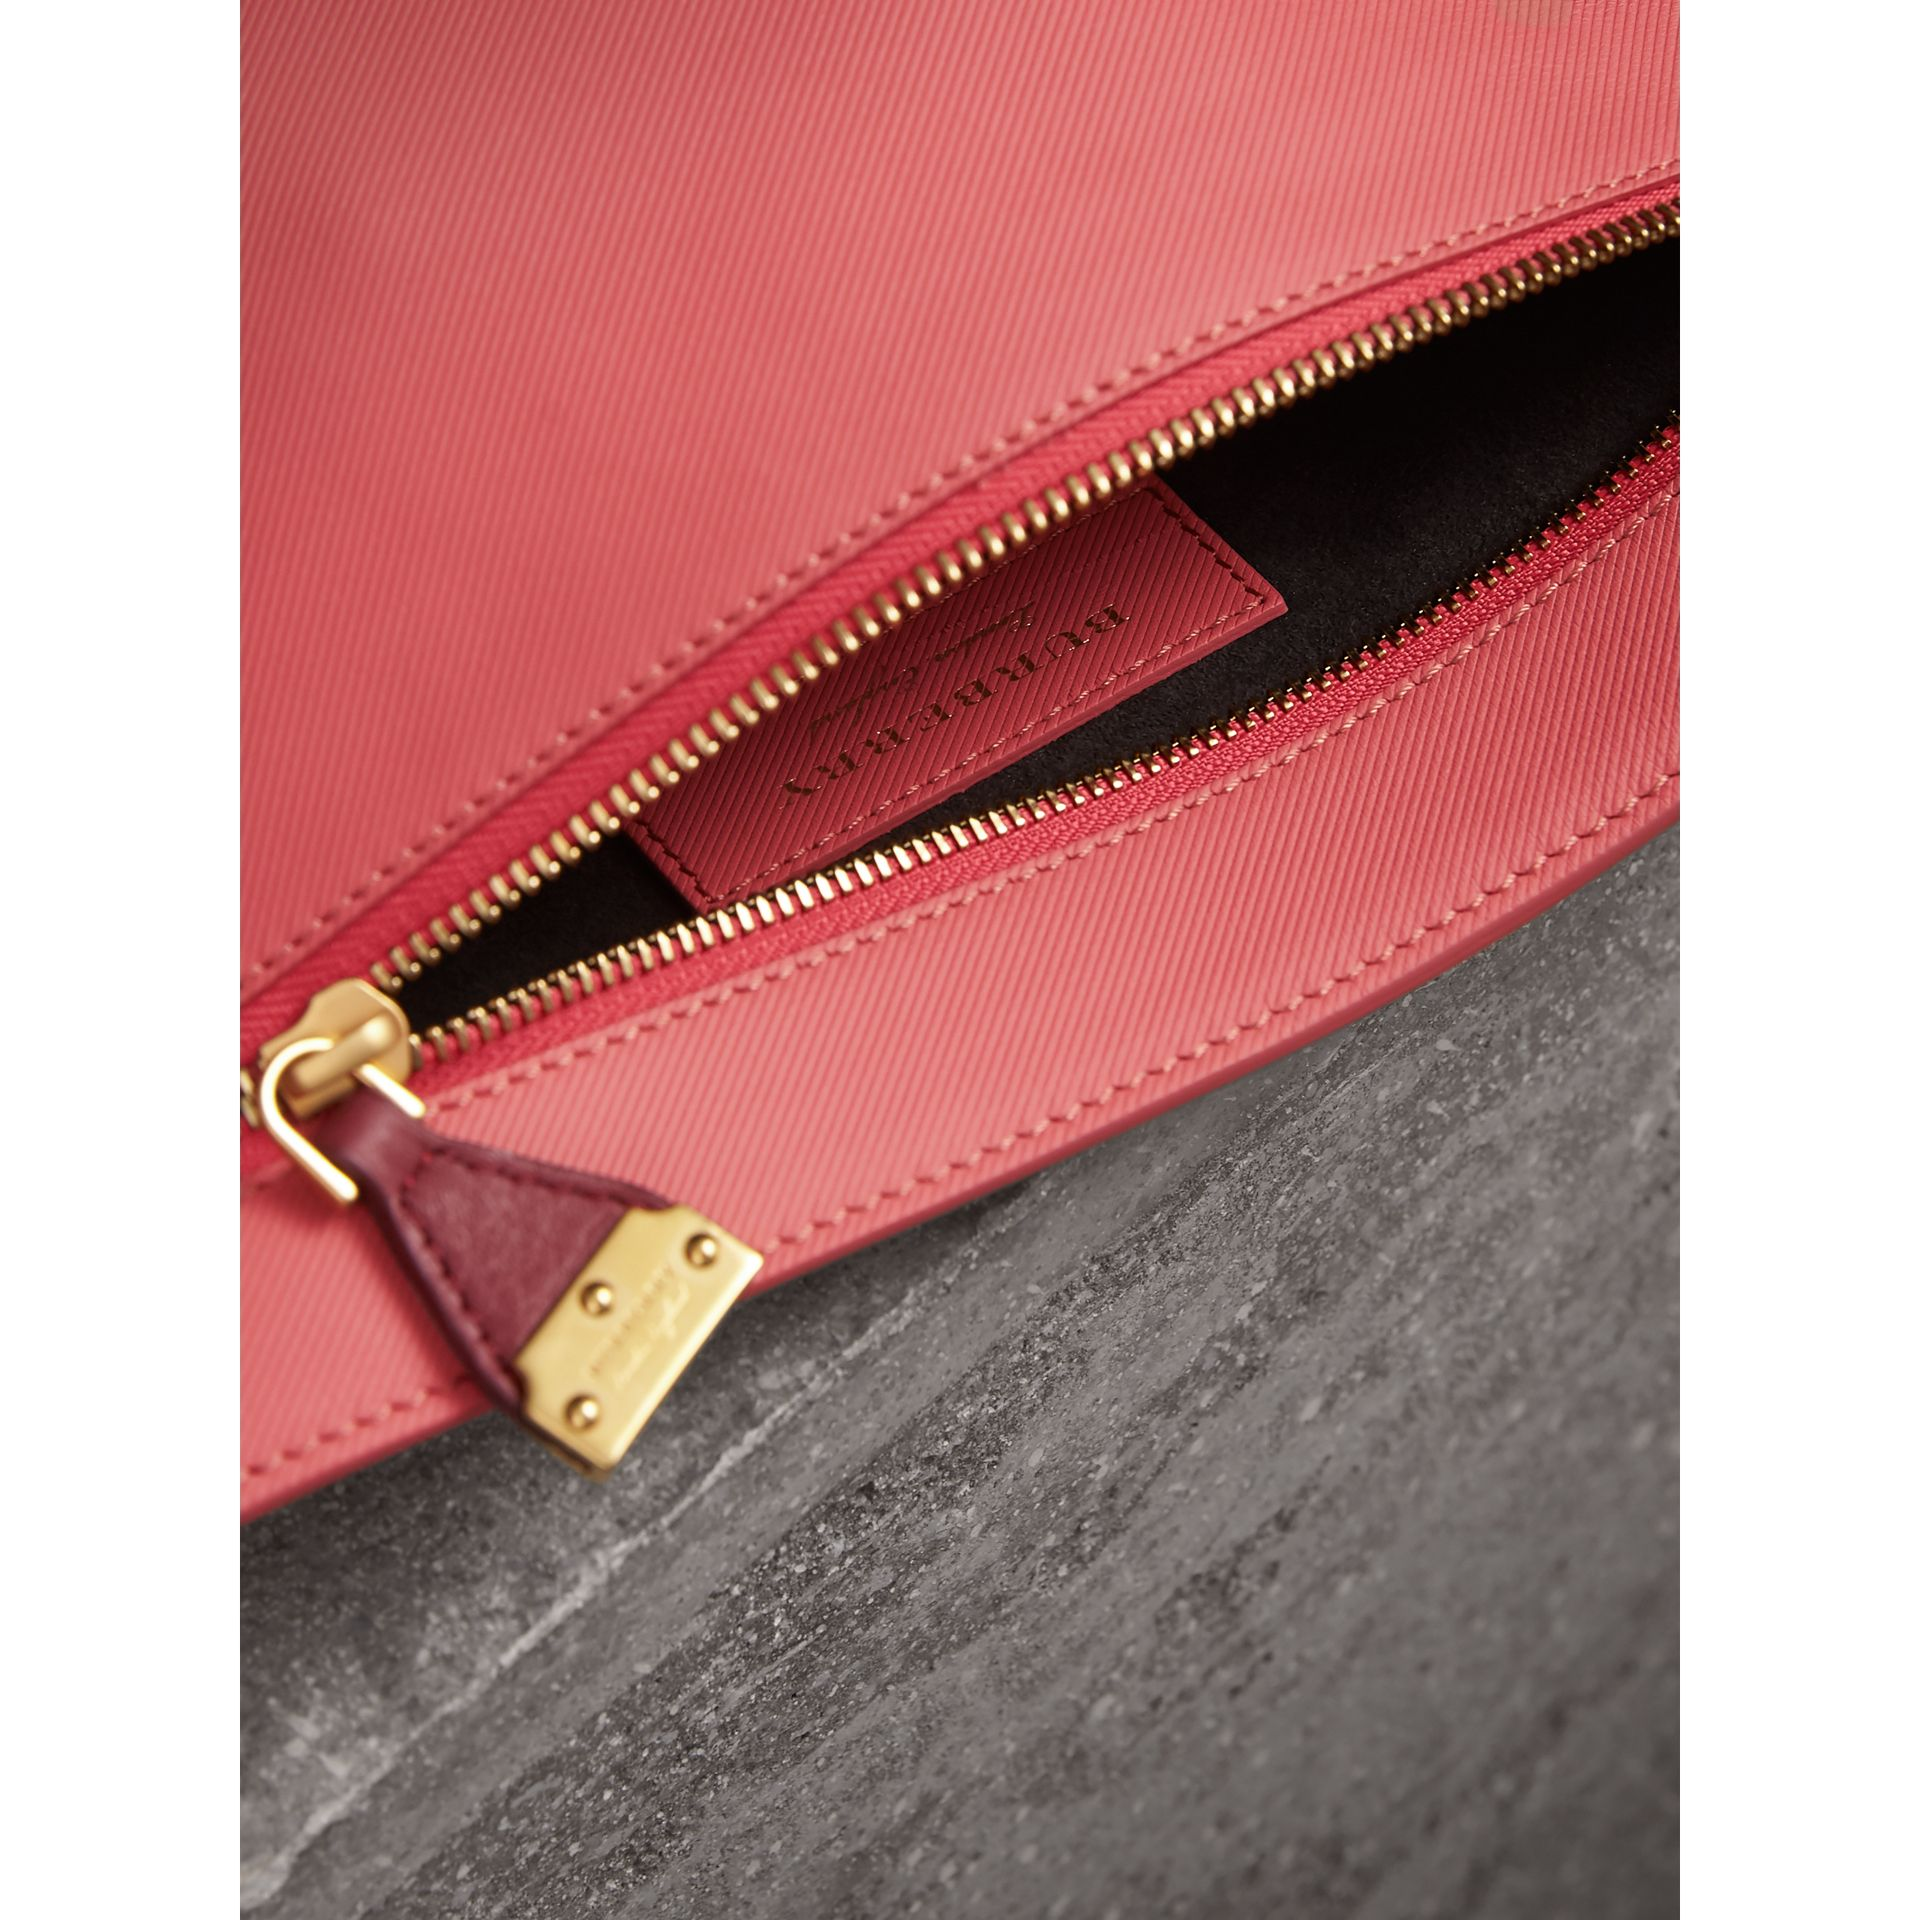 Two-tone Trench Leather Wristlet Pouch in Blossom Pink/antique Red - Women | Burberry United Kingdom - gallery image 6